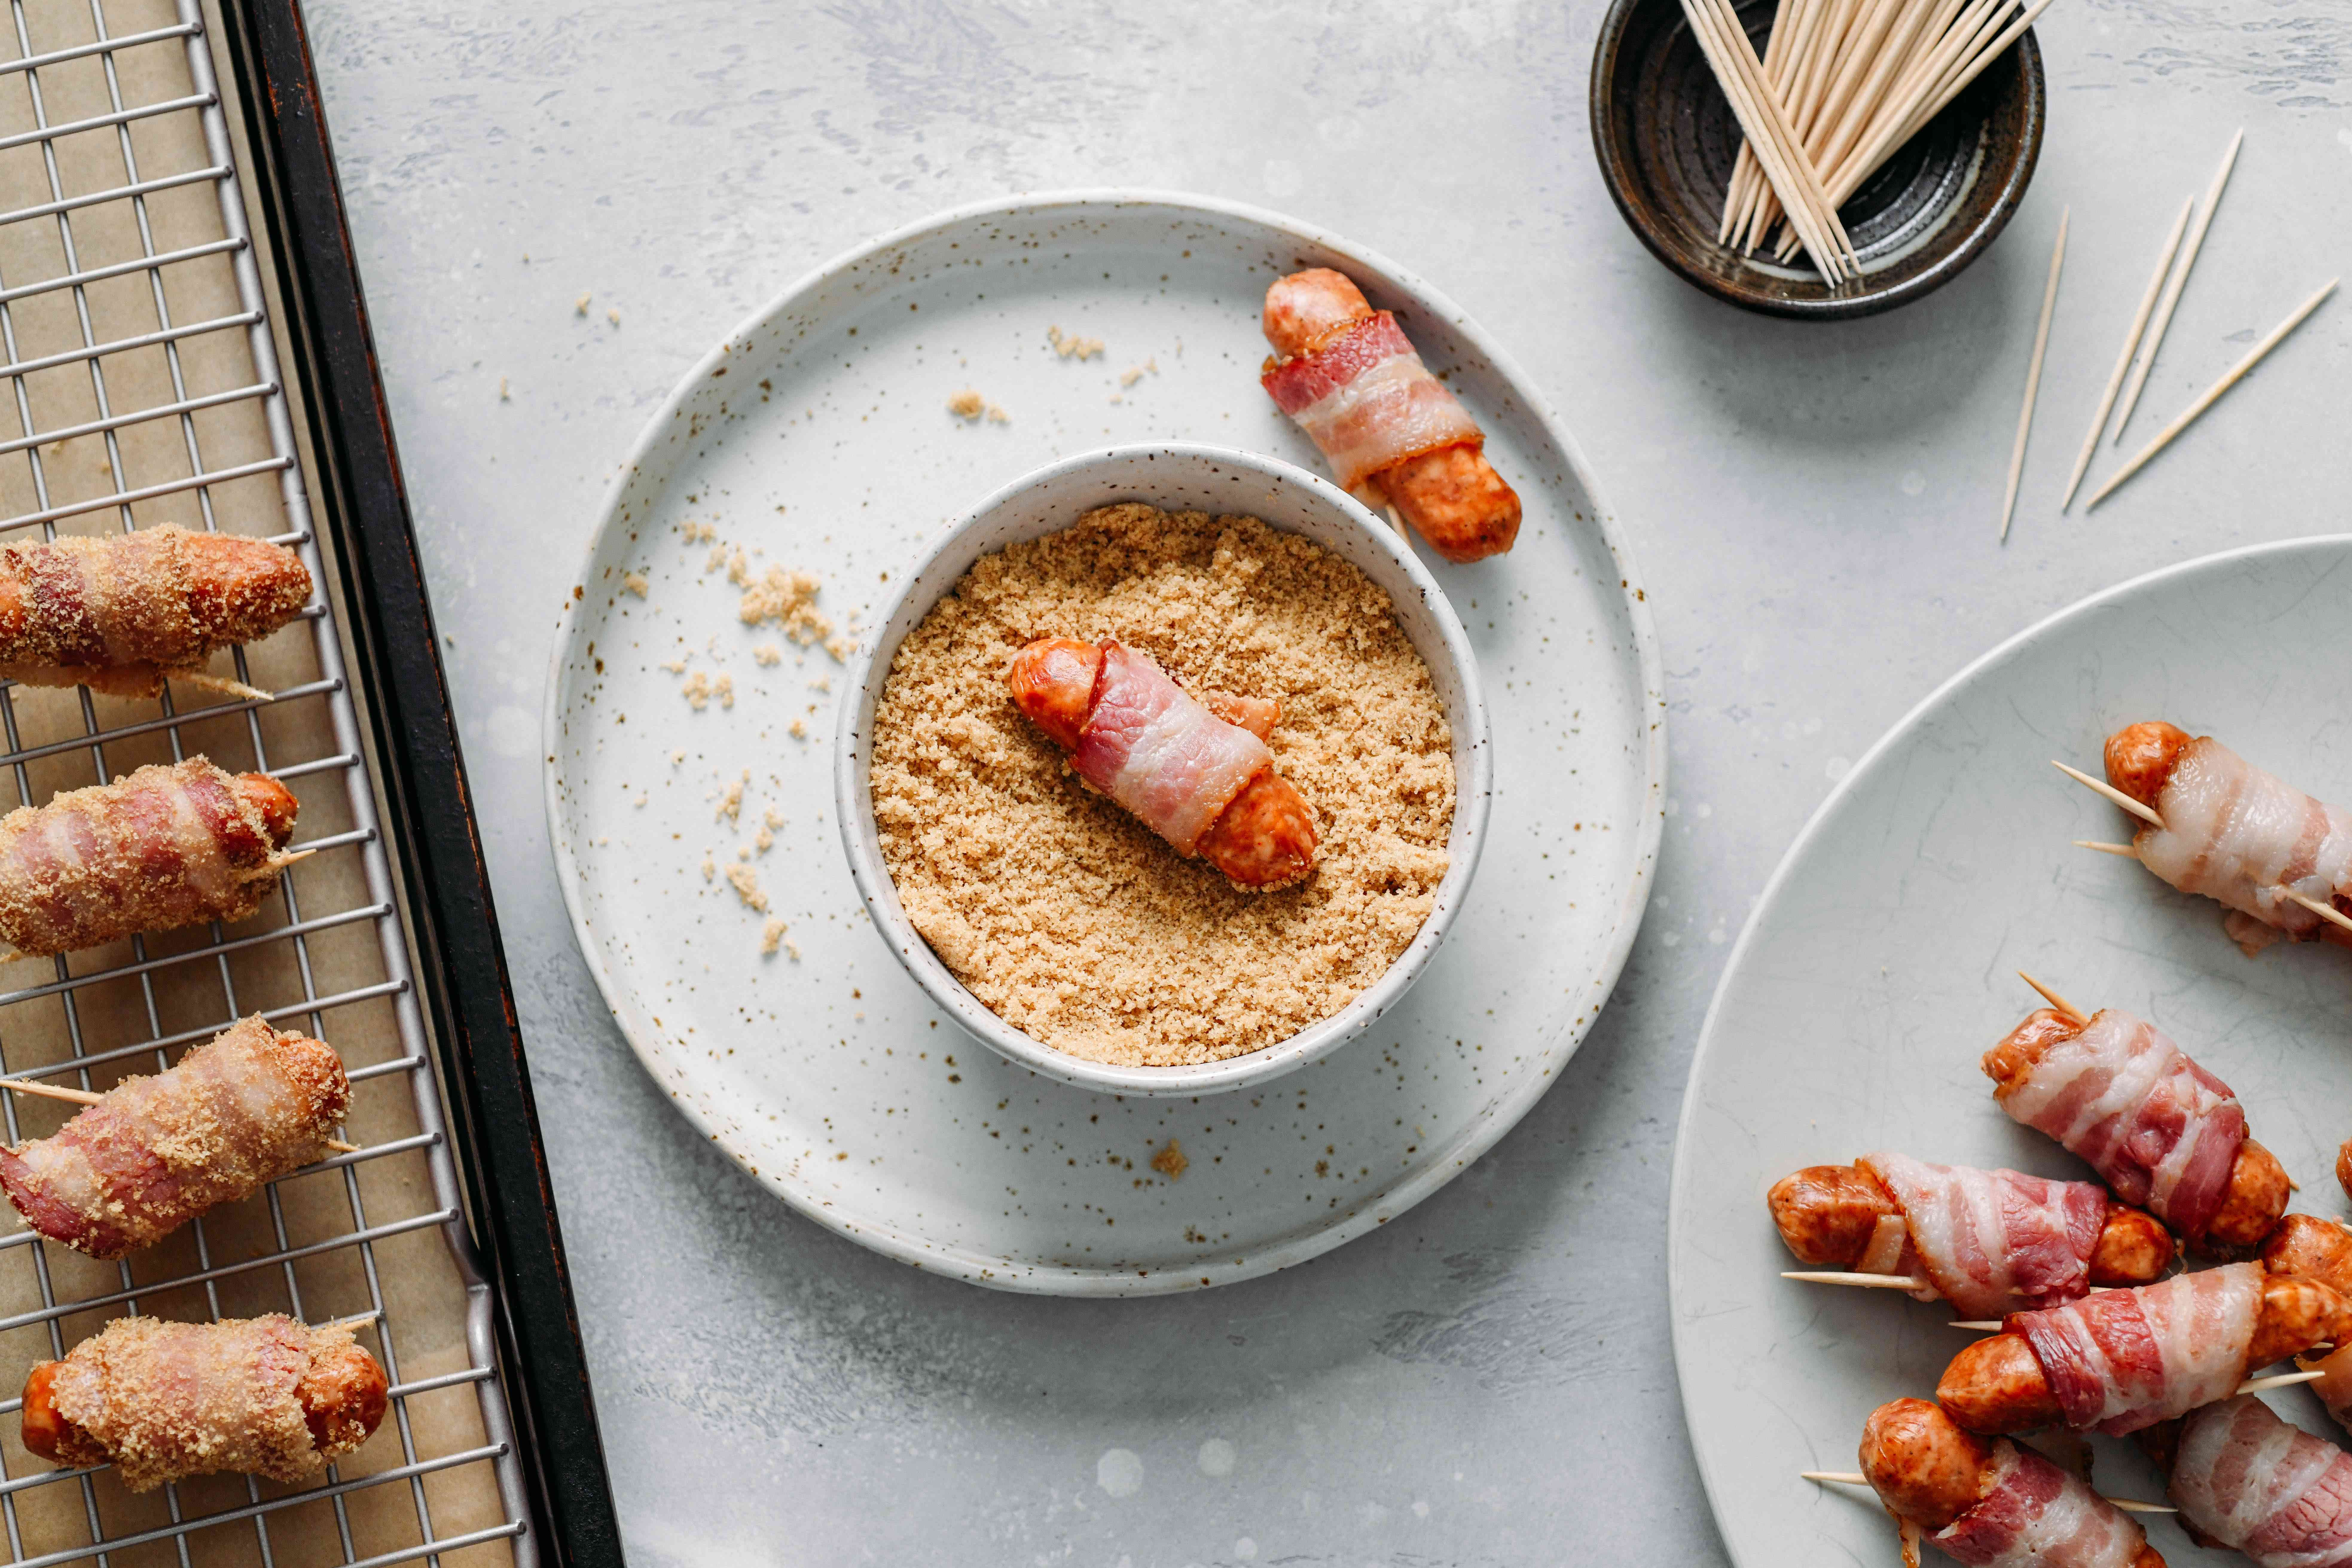 Place the sugar in a bowl and roll each little sausage and bacon bundle in i